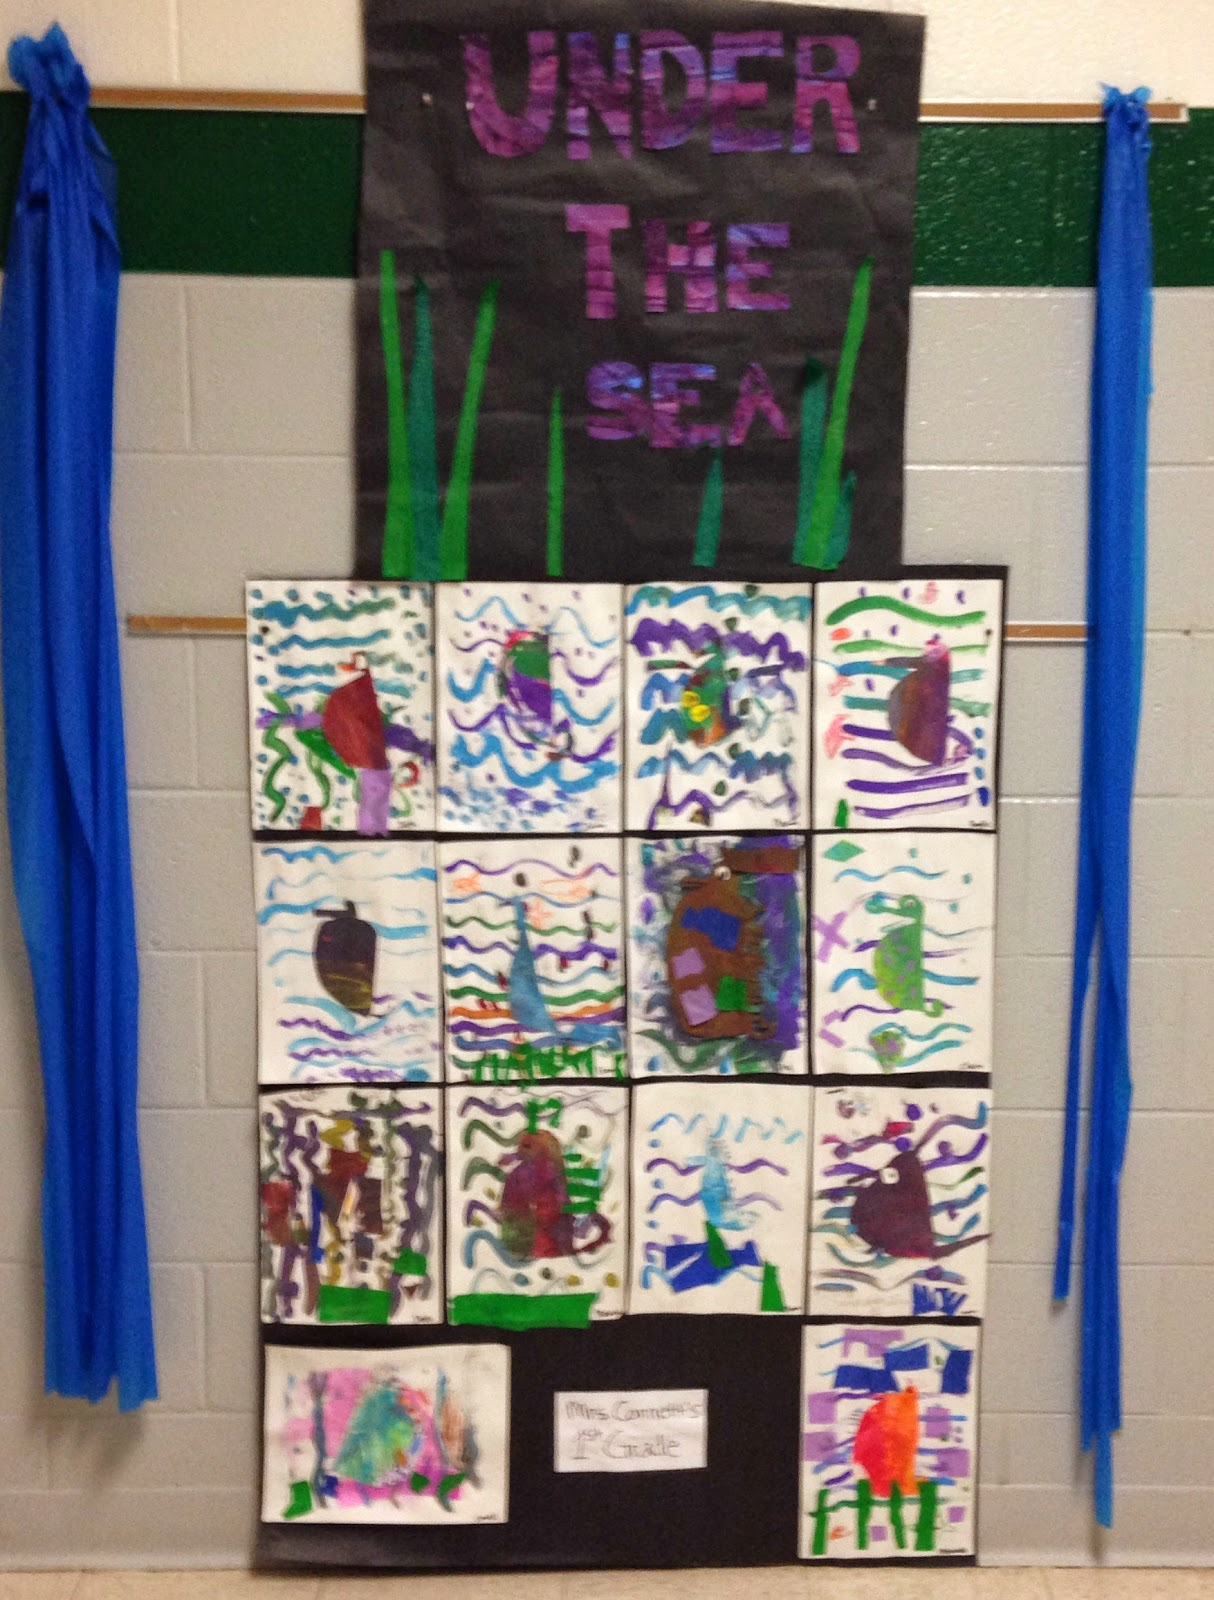 Art from Chaos: Walter Hill's Eric Carle Show - photo#46